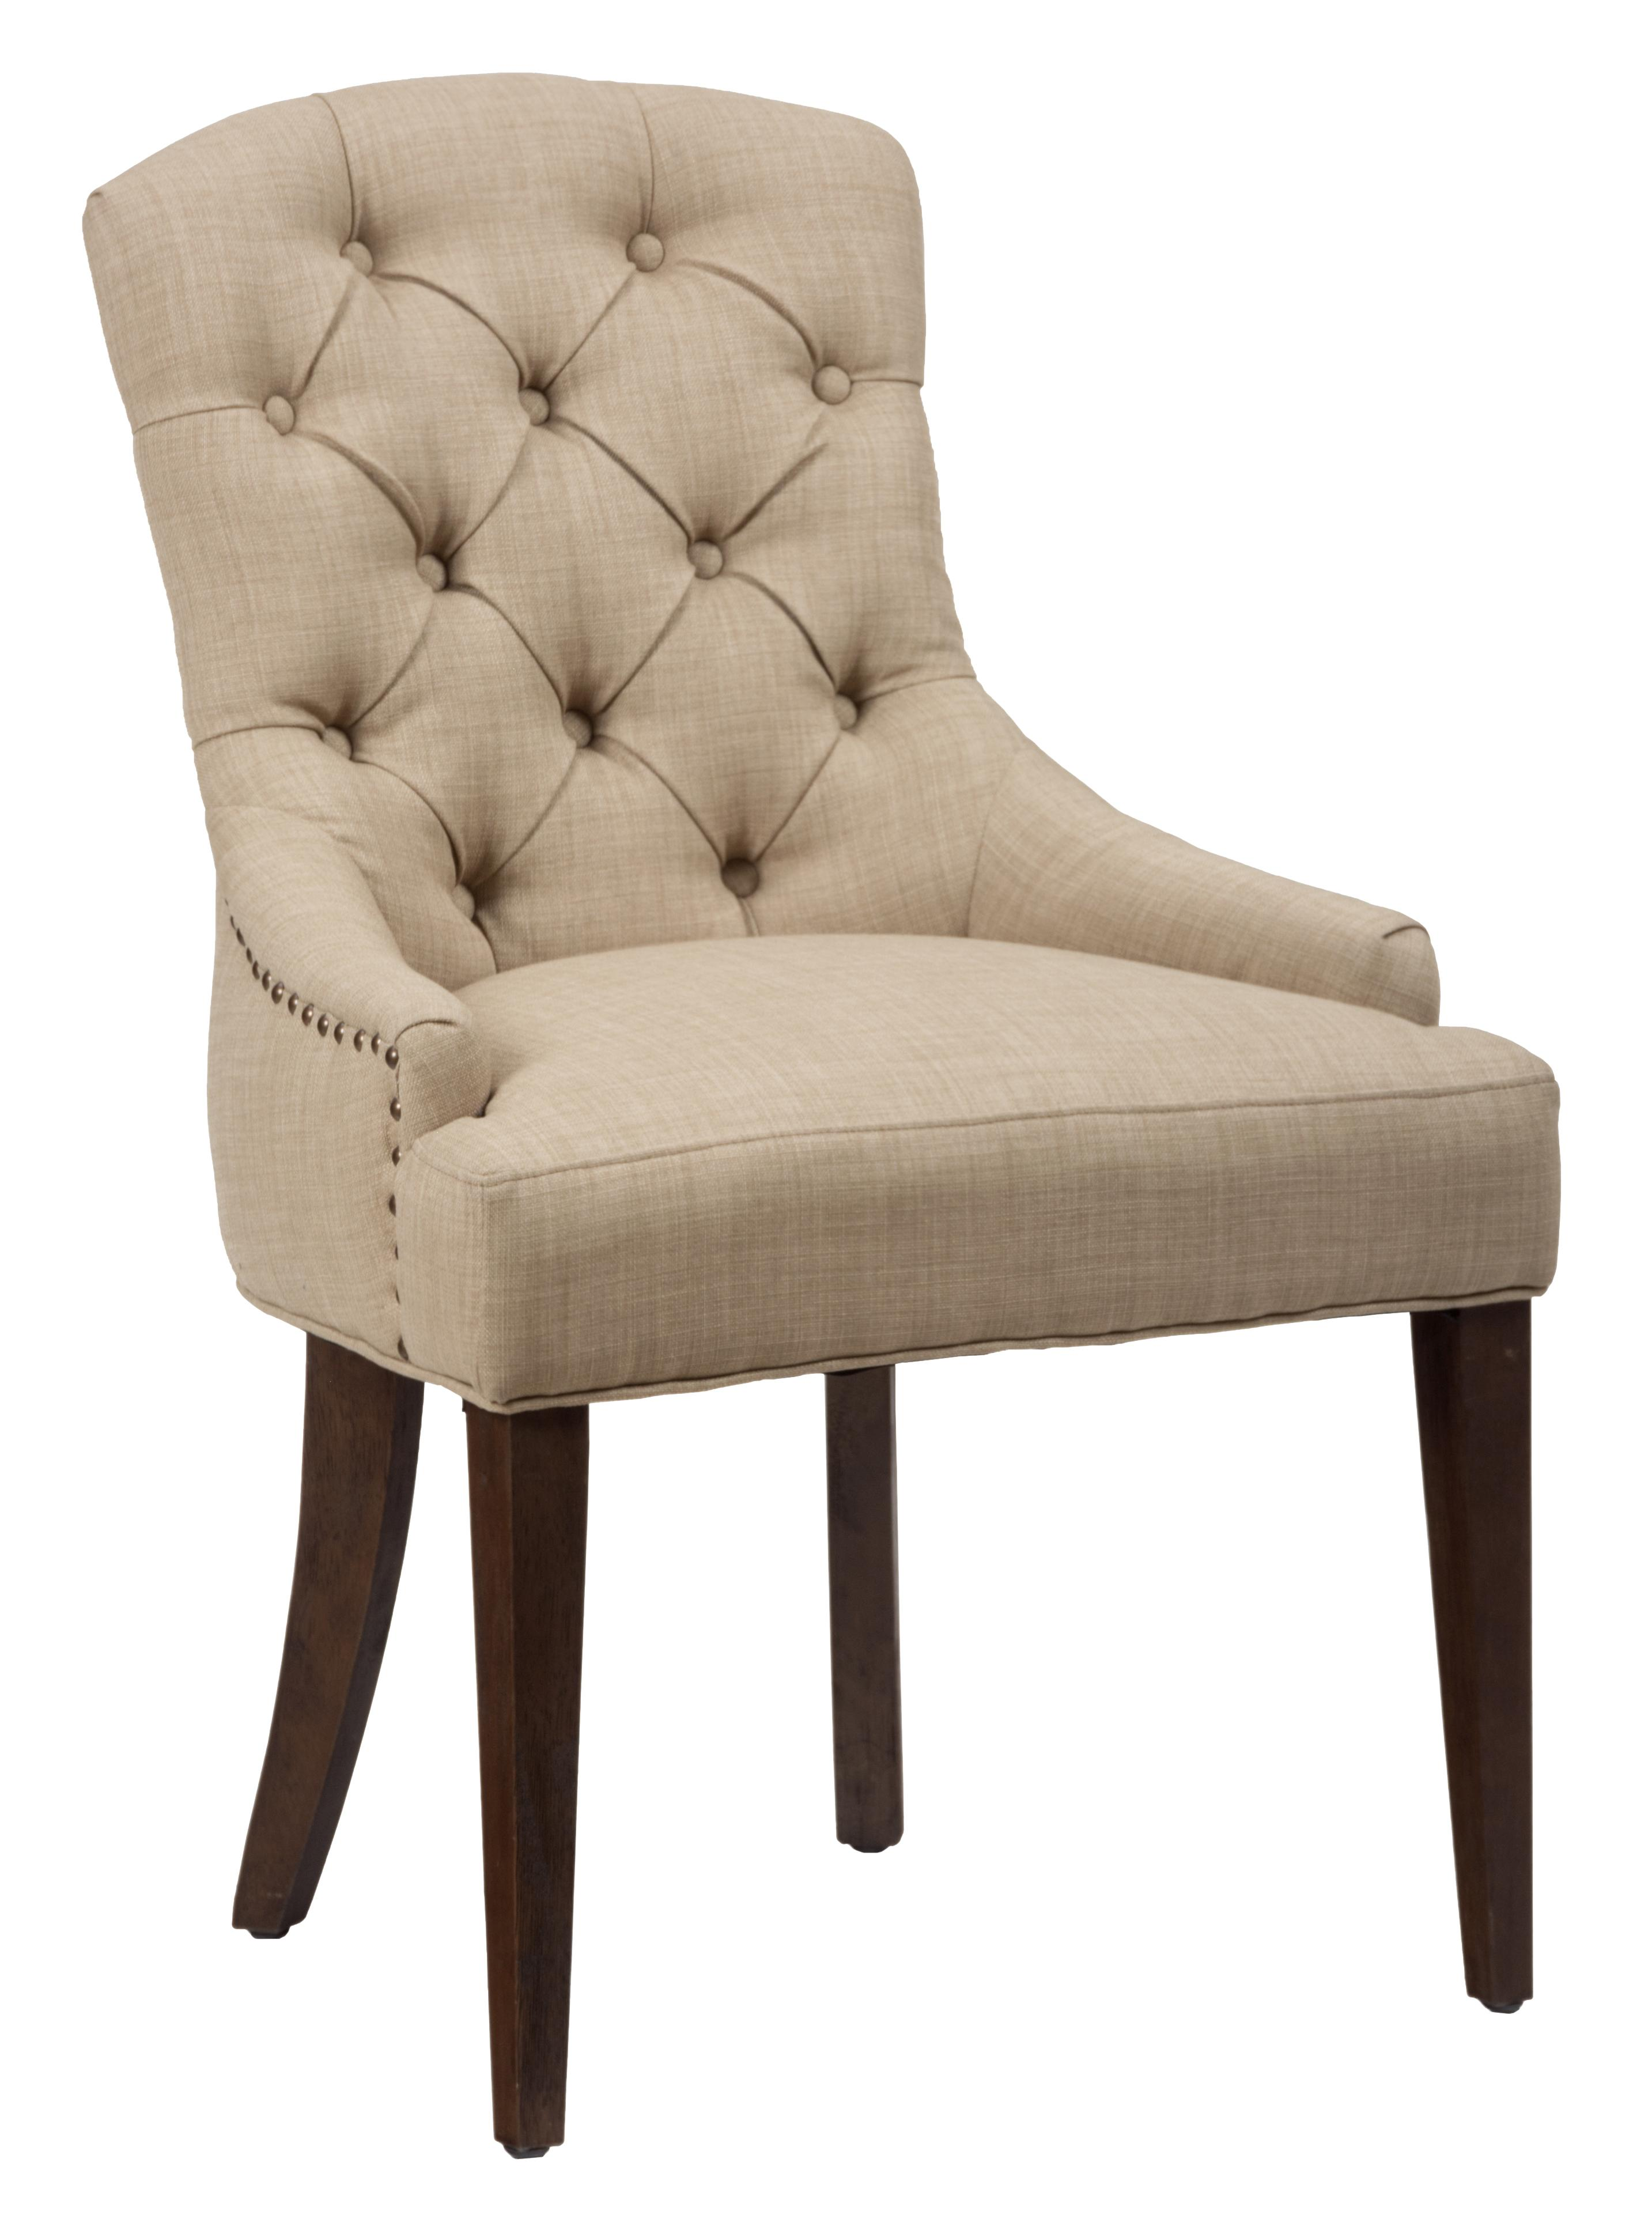 Long Beach Upholstered Side Chair with Tufted Back